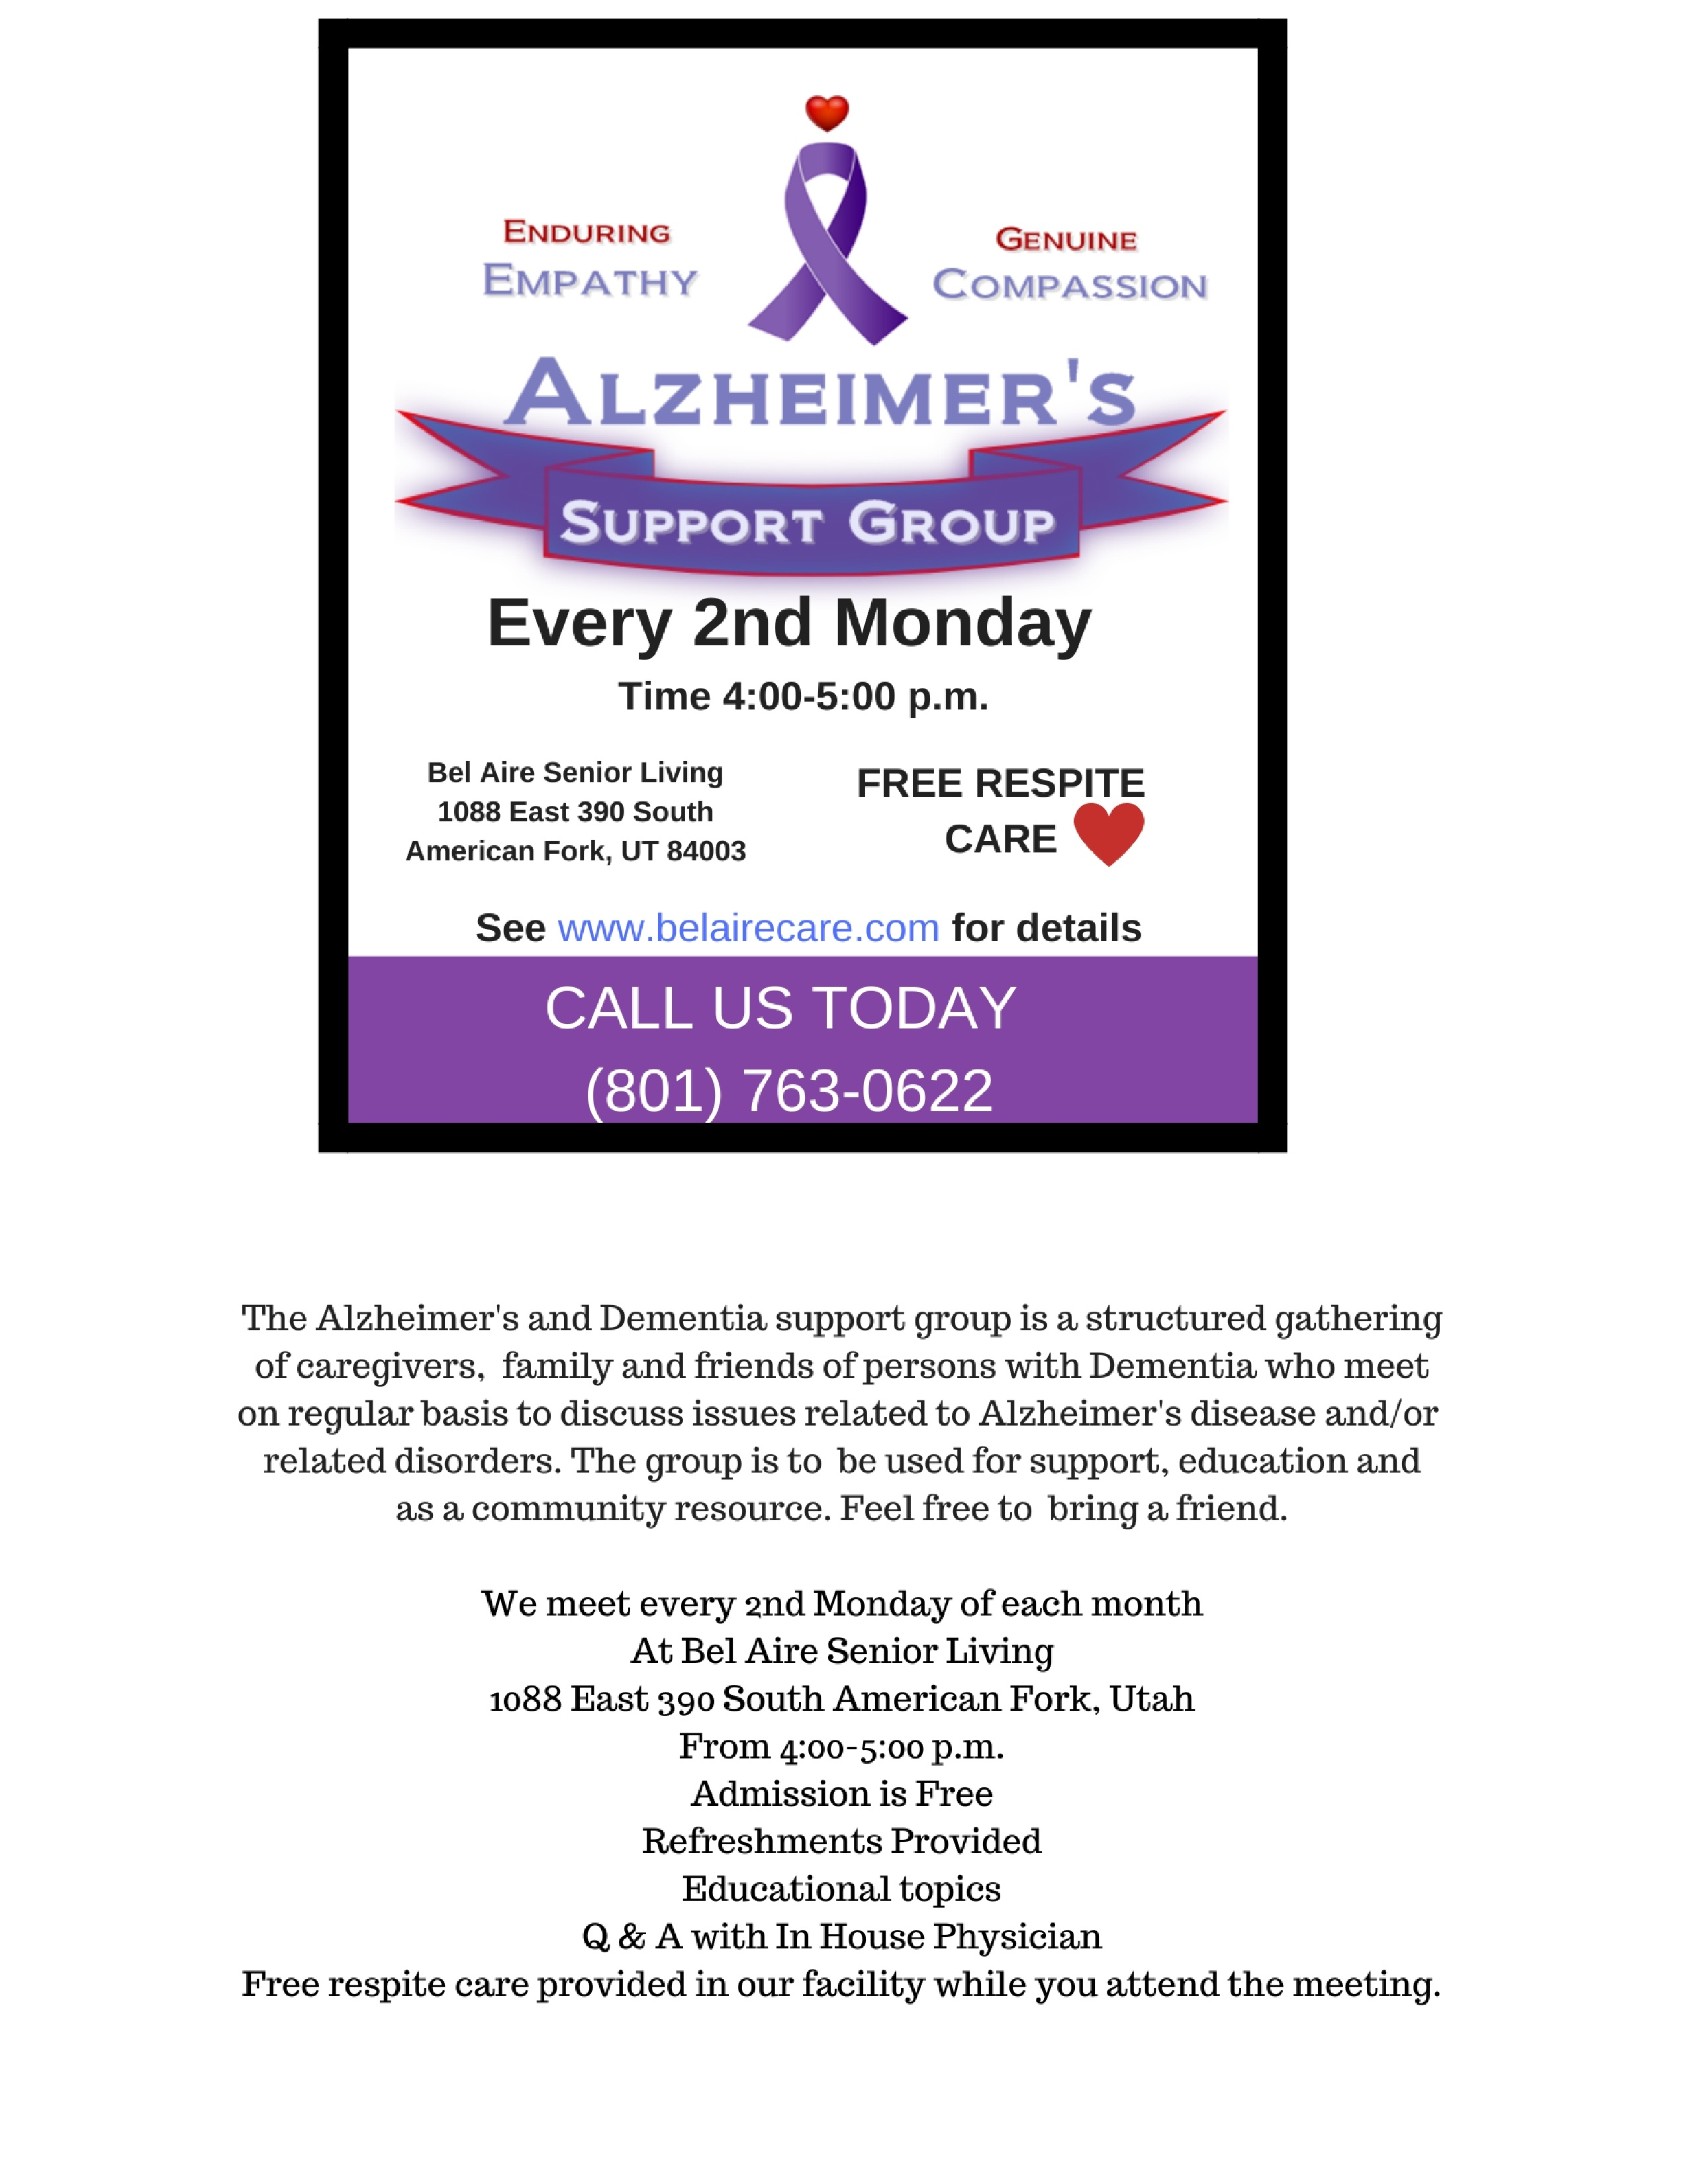 Alzheimer's Meeting on Monday